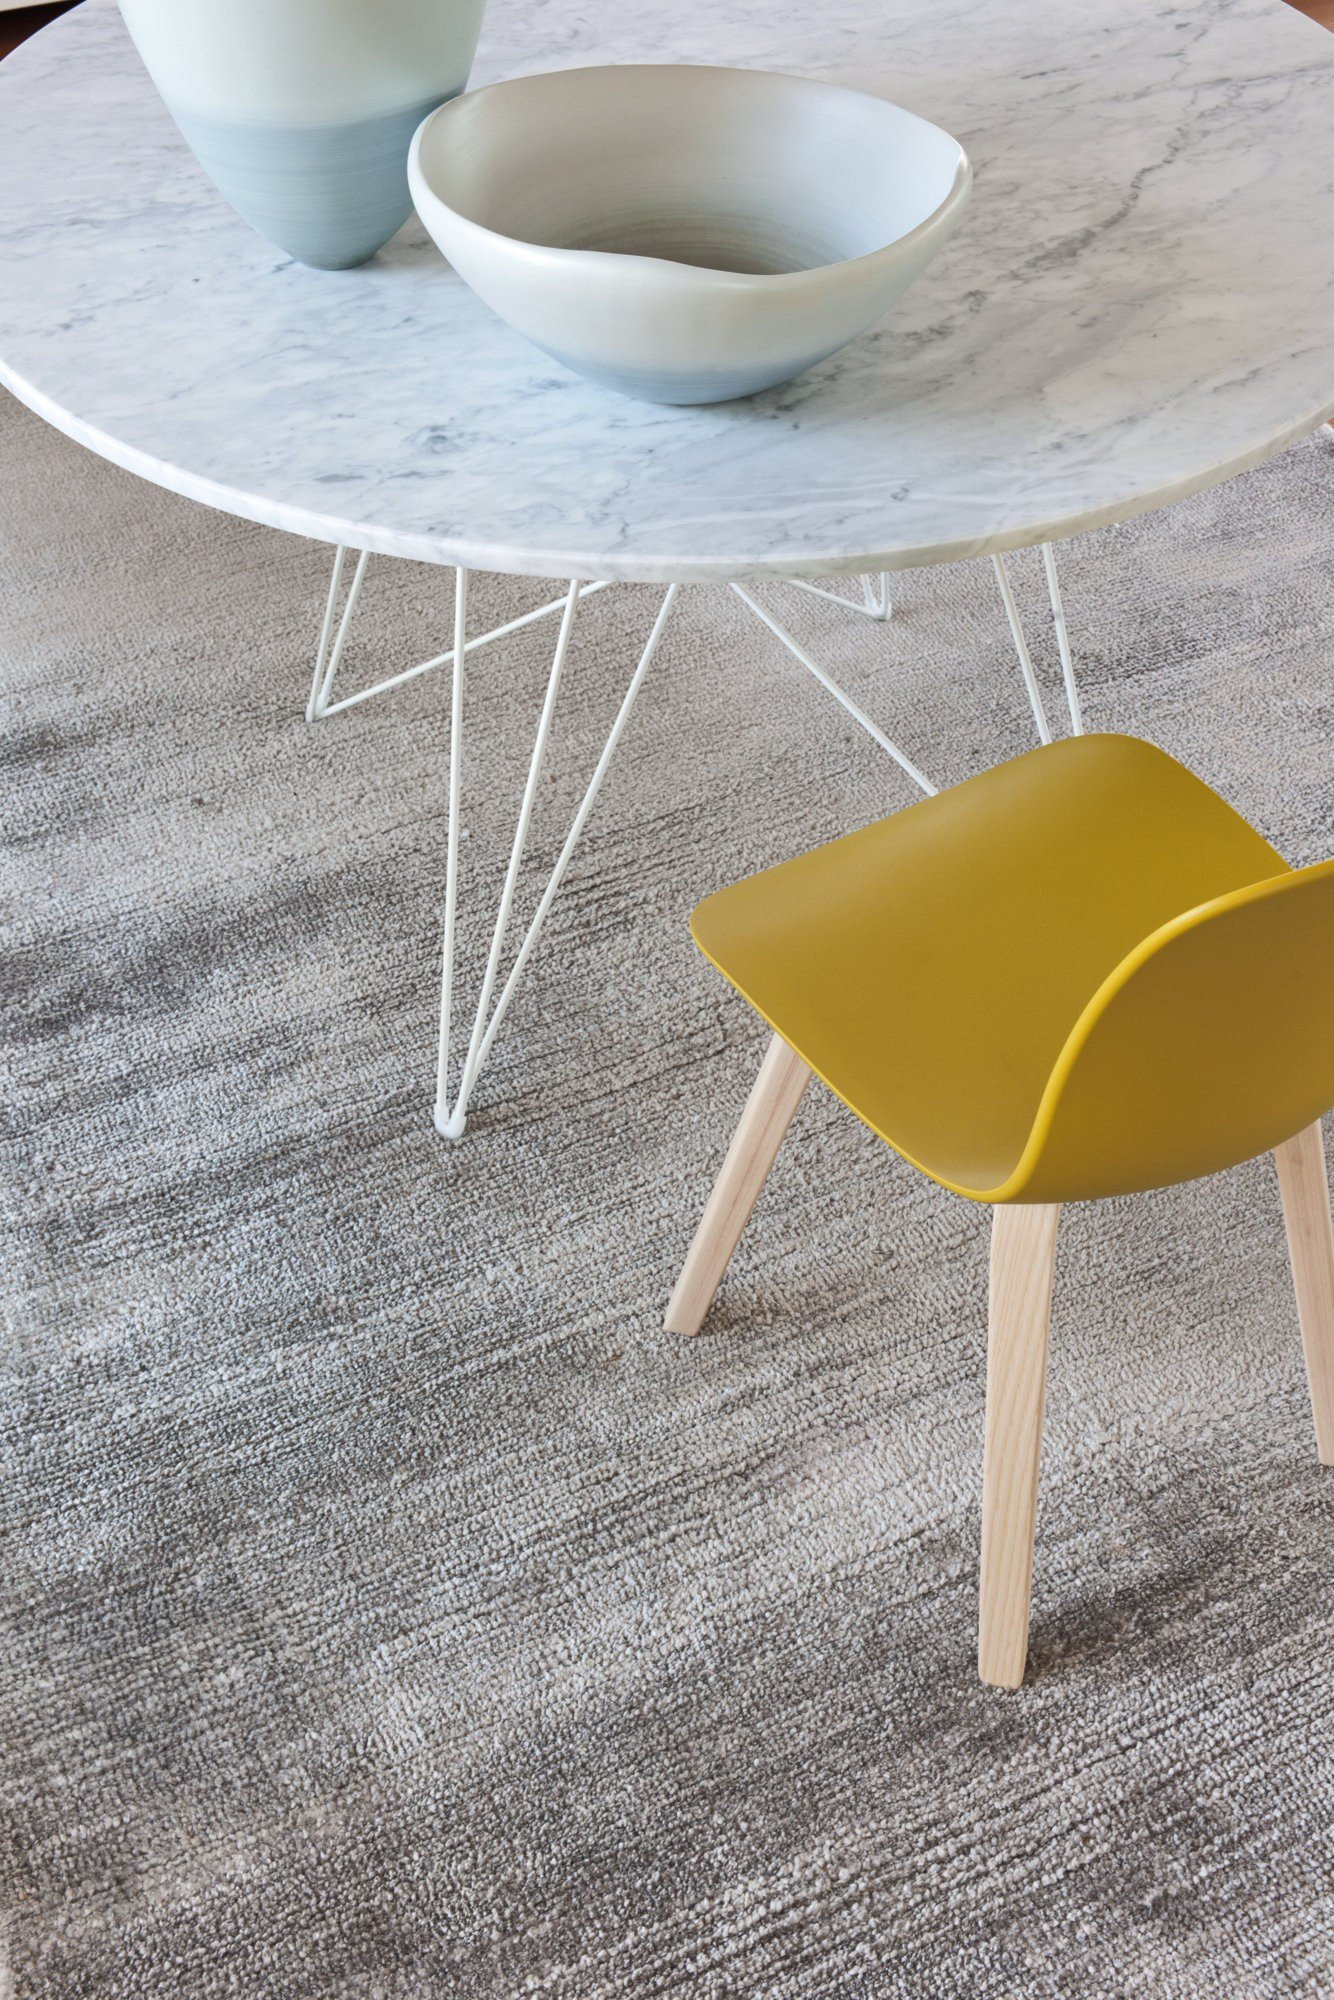 Substance chair substance collection by magis design naoto for Magis design